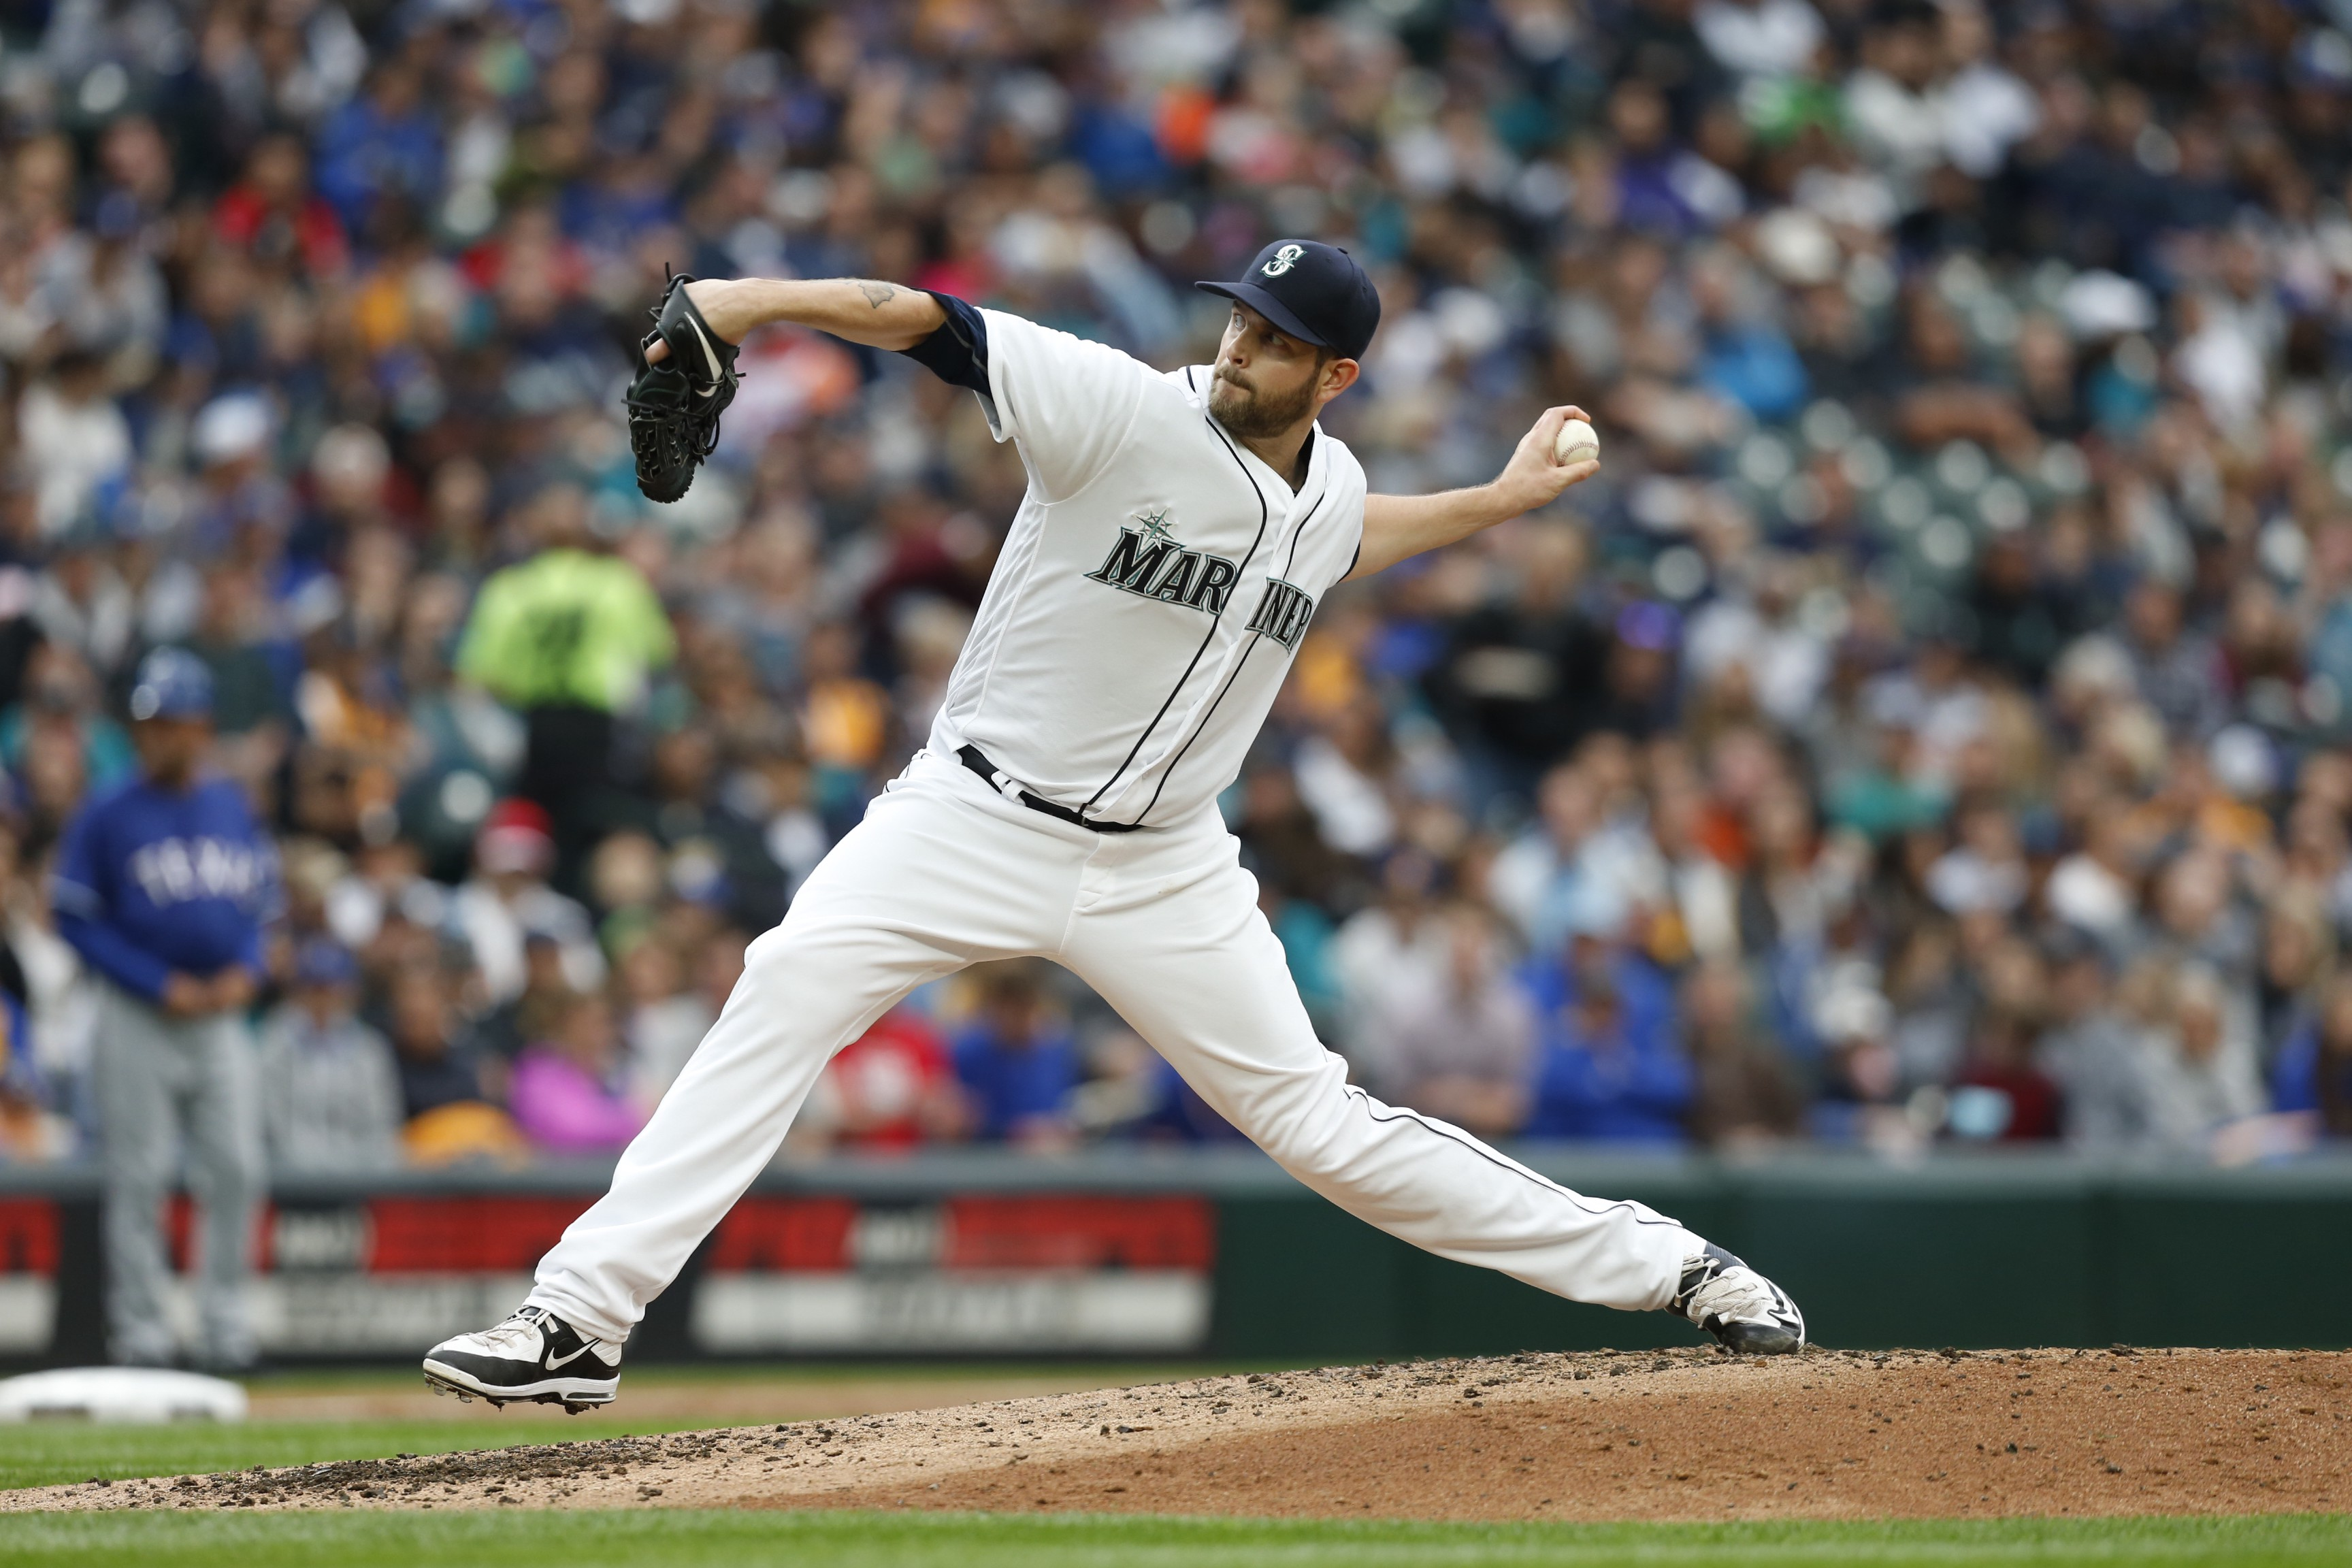 Mariners sign LHP James Paxton to Major League contract | by ...